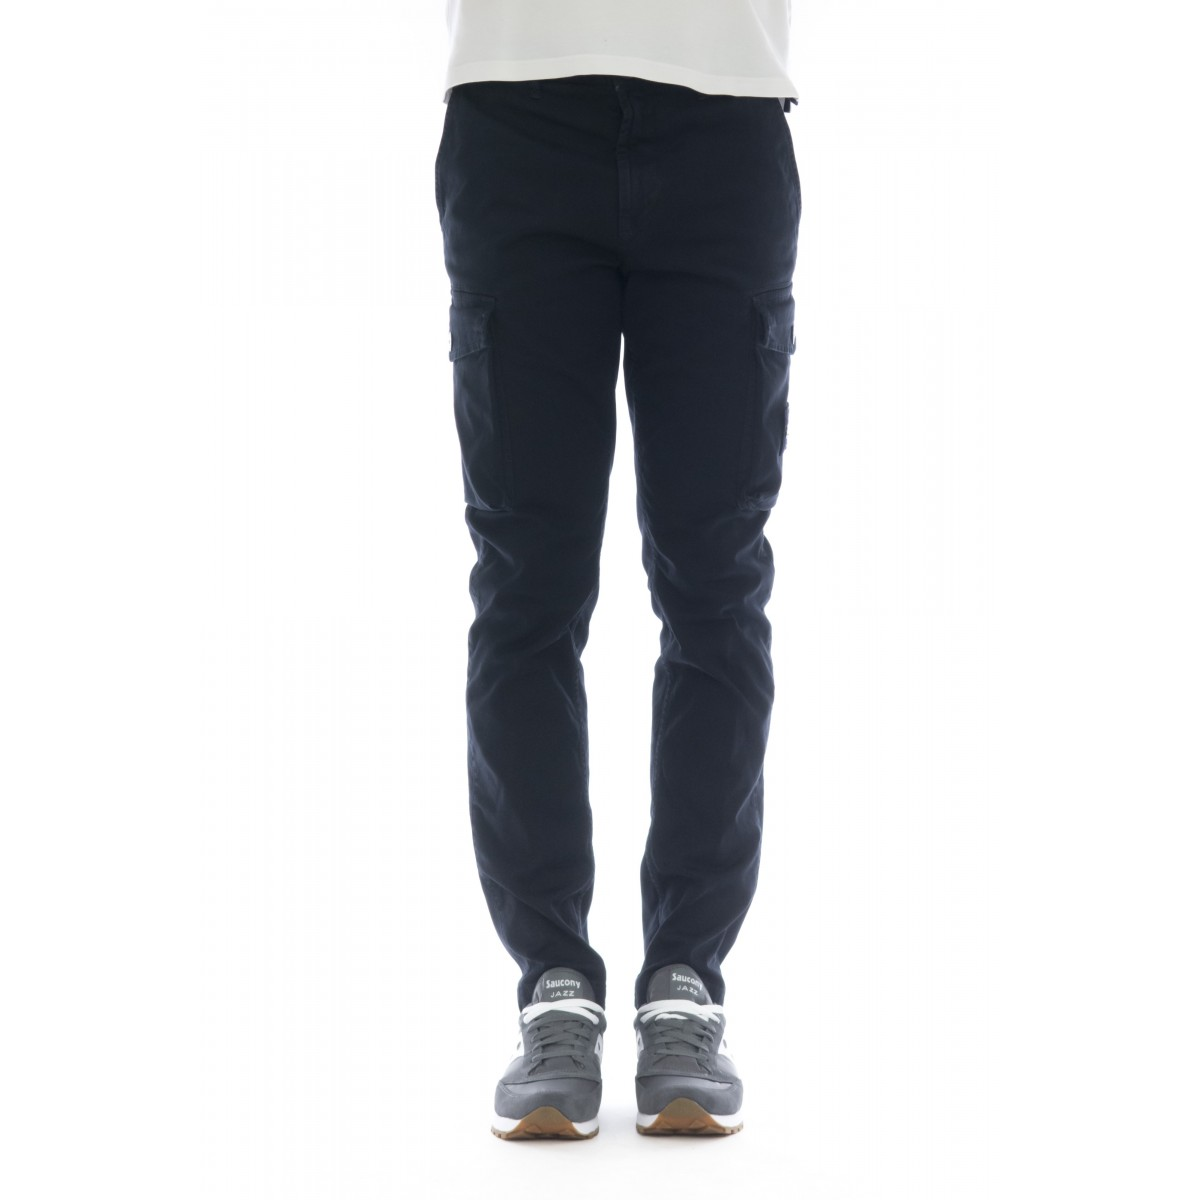 Cargo Trousers - 308LI Broken Twill stretch cotton